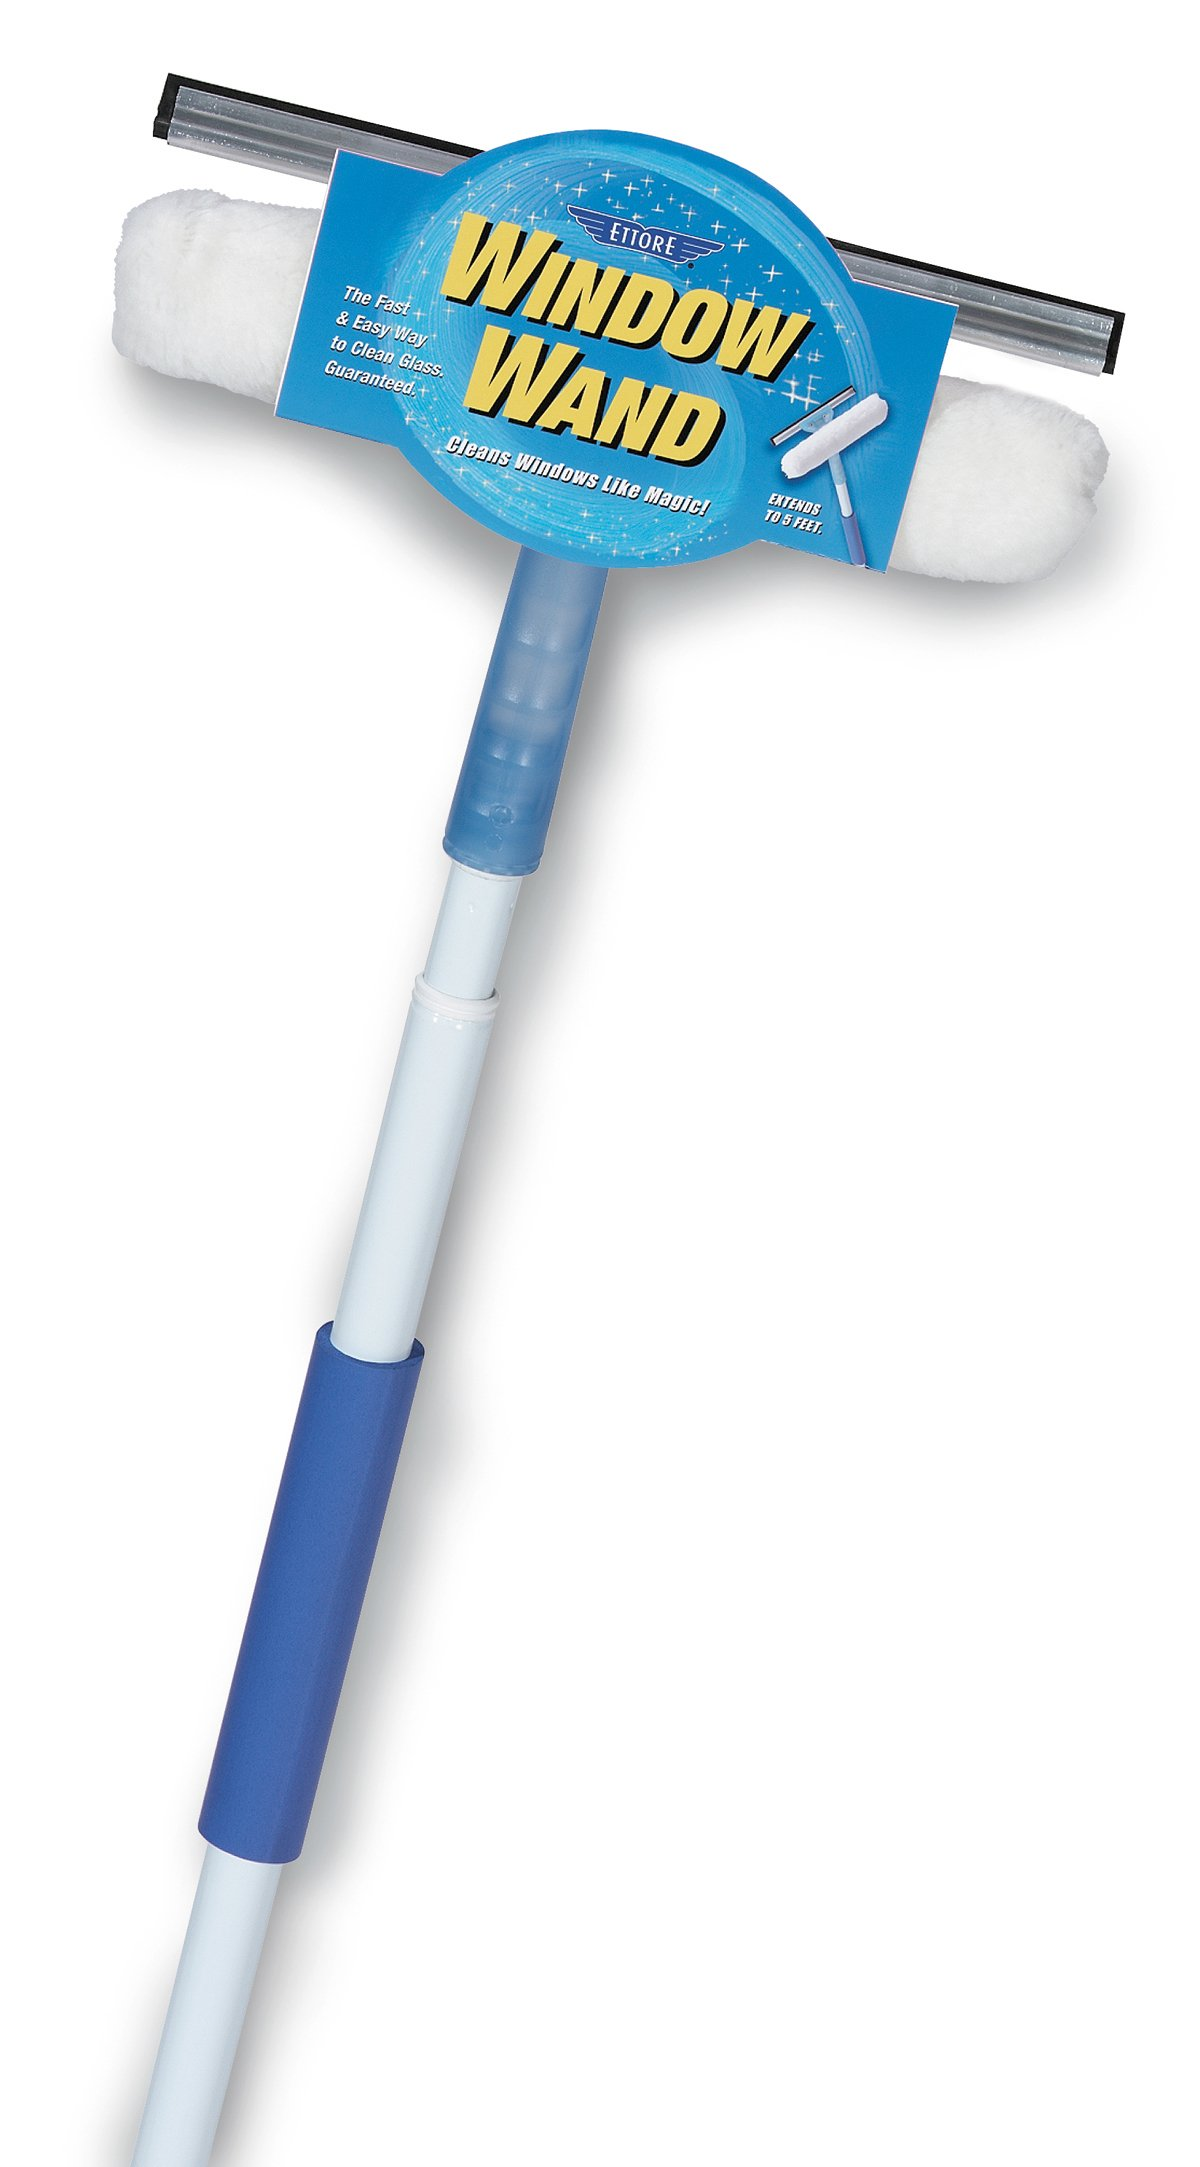 Ettore Window Wand Squeegee and Washer Combo Tool, 5 Feet Handle